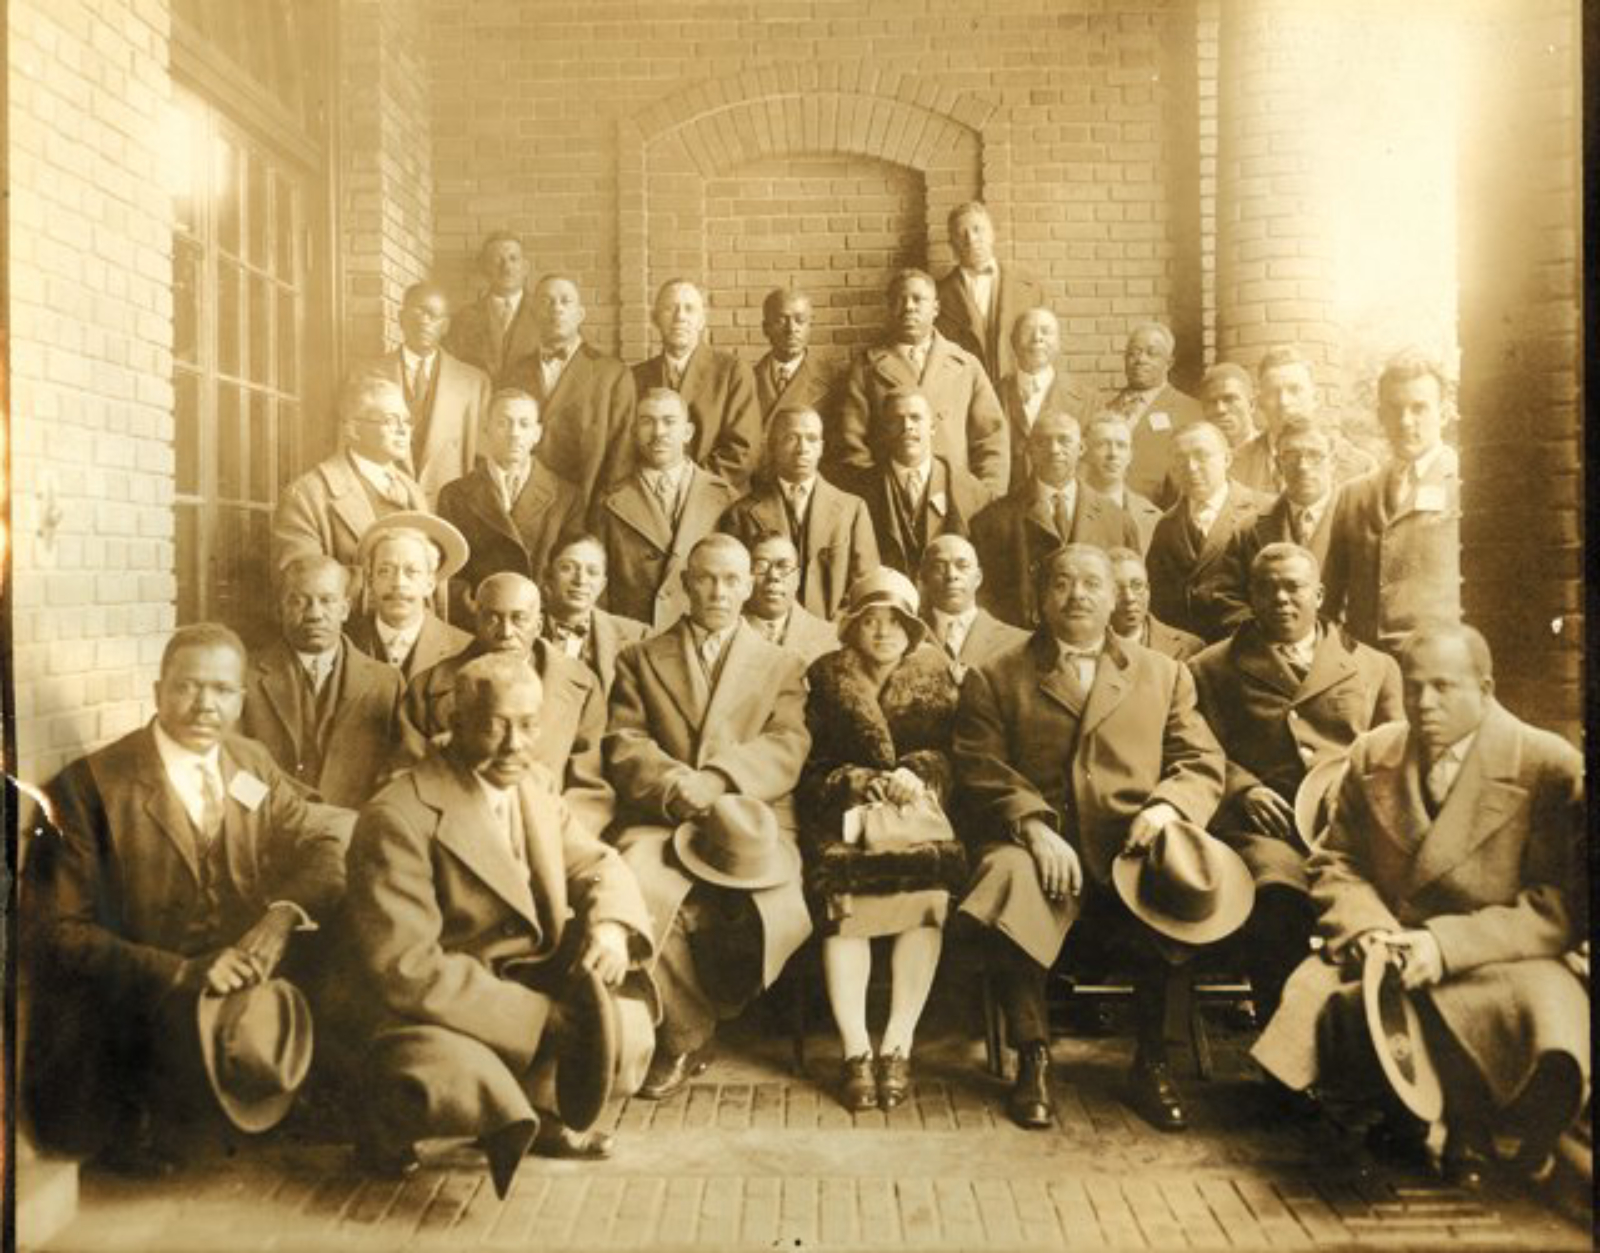 ethel furman was the only woman at the 1928 Hampton Institute annual Negro Contractors' Conference